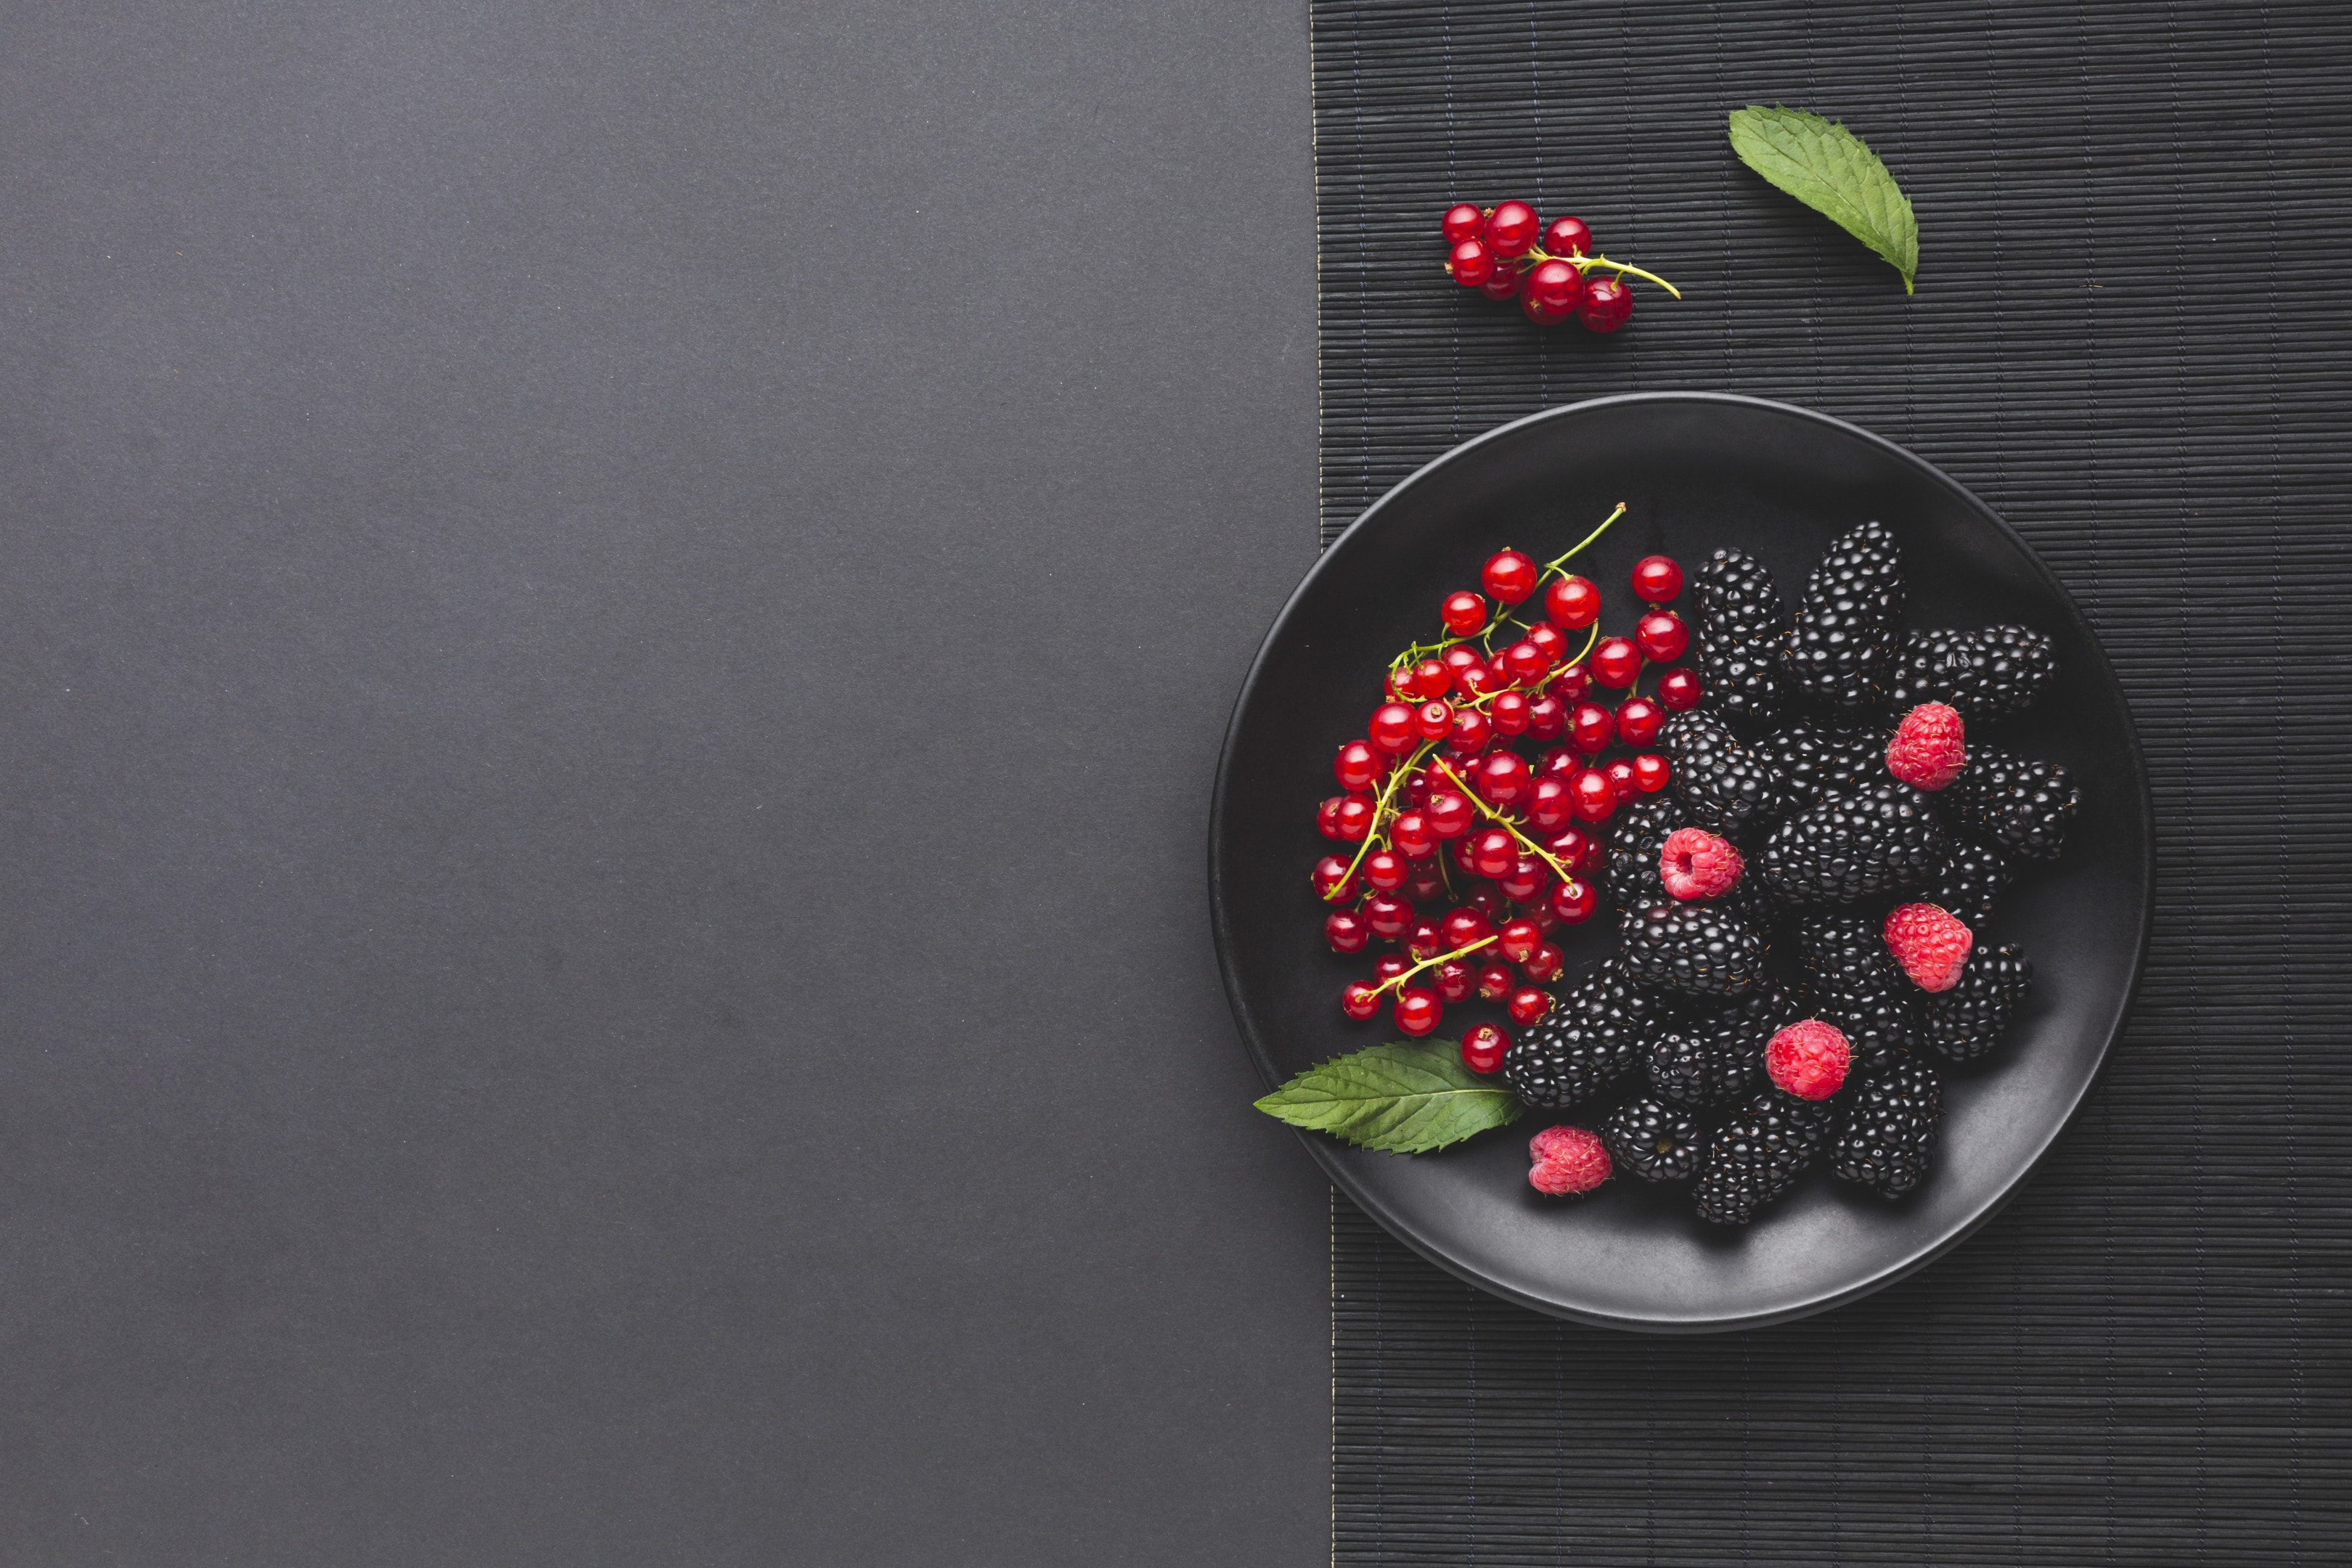 Flat lay plate of fresh berries on wooden table